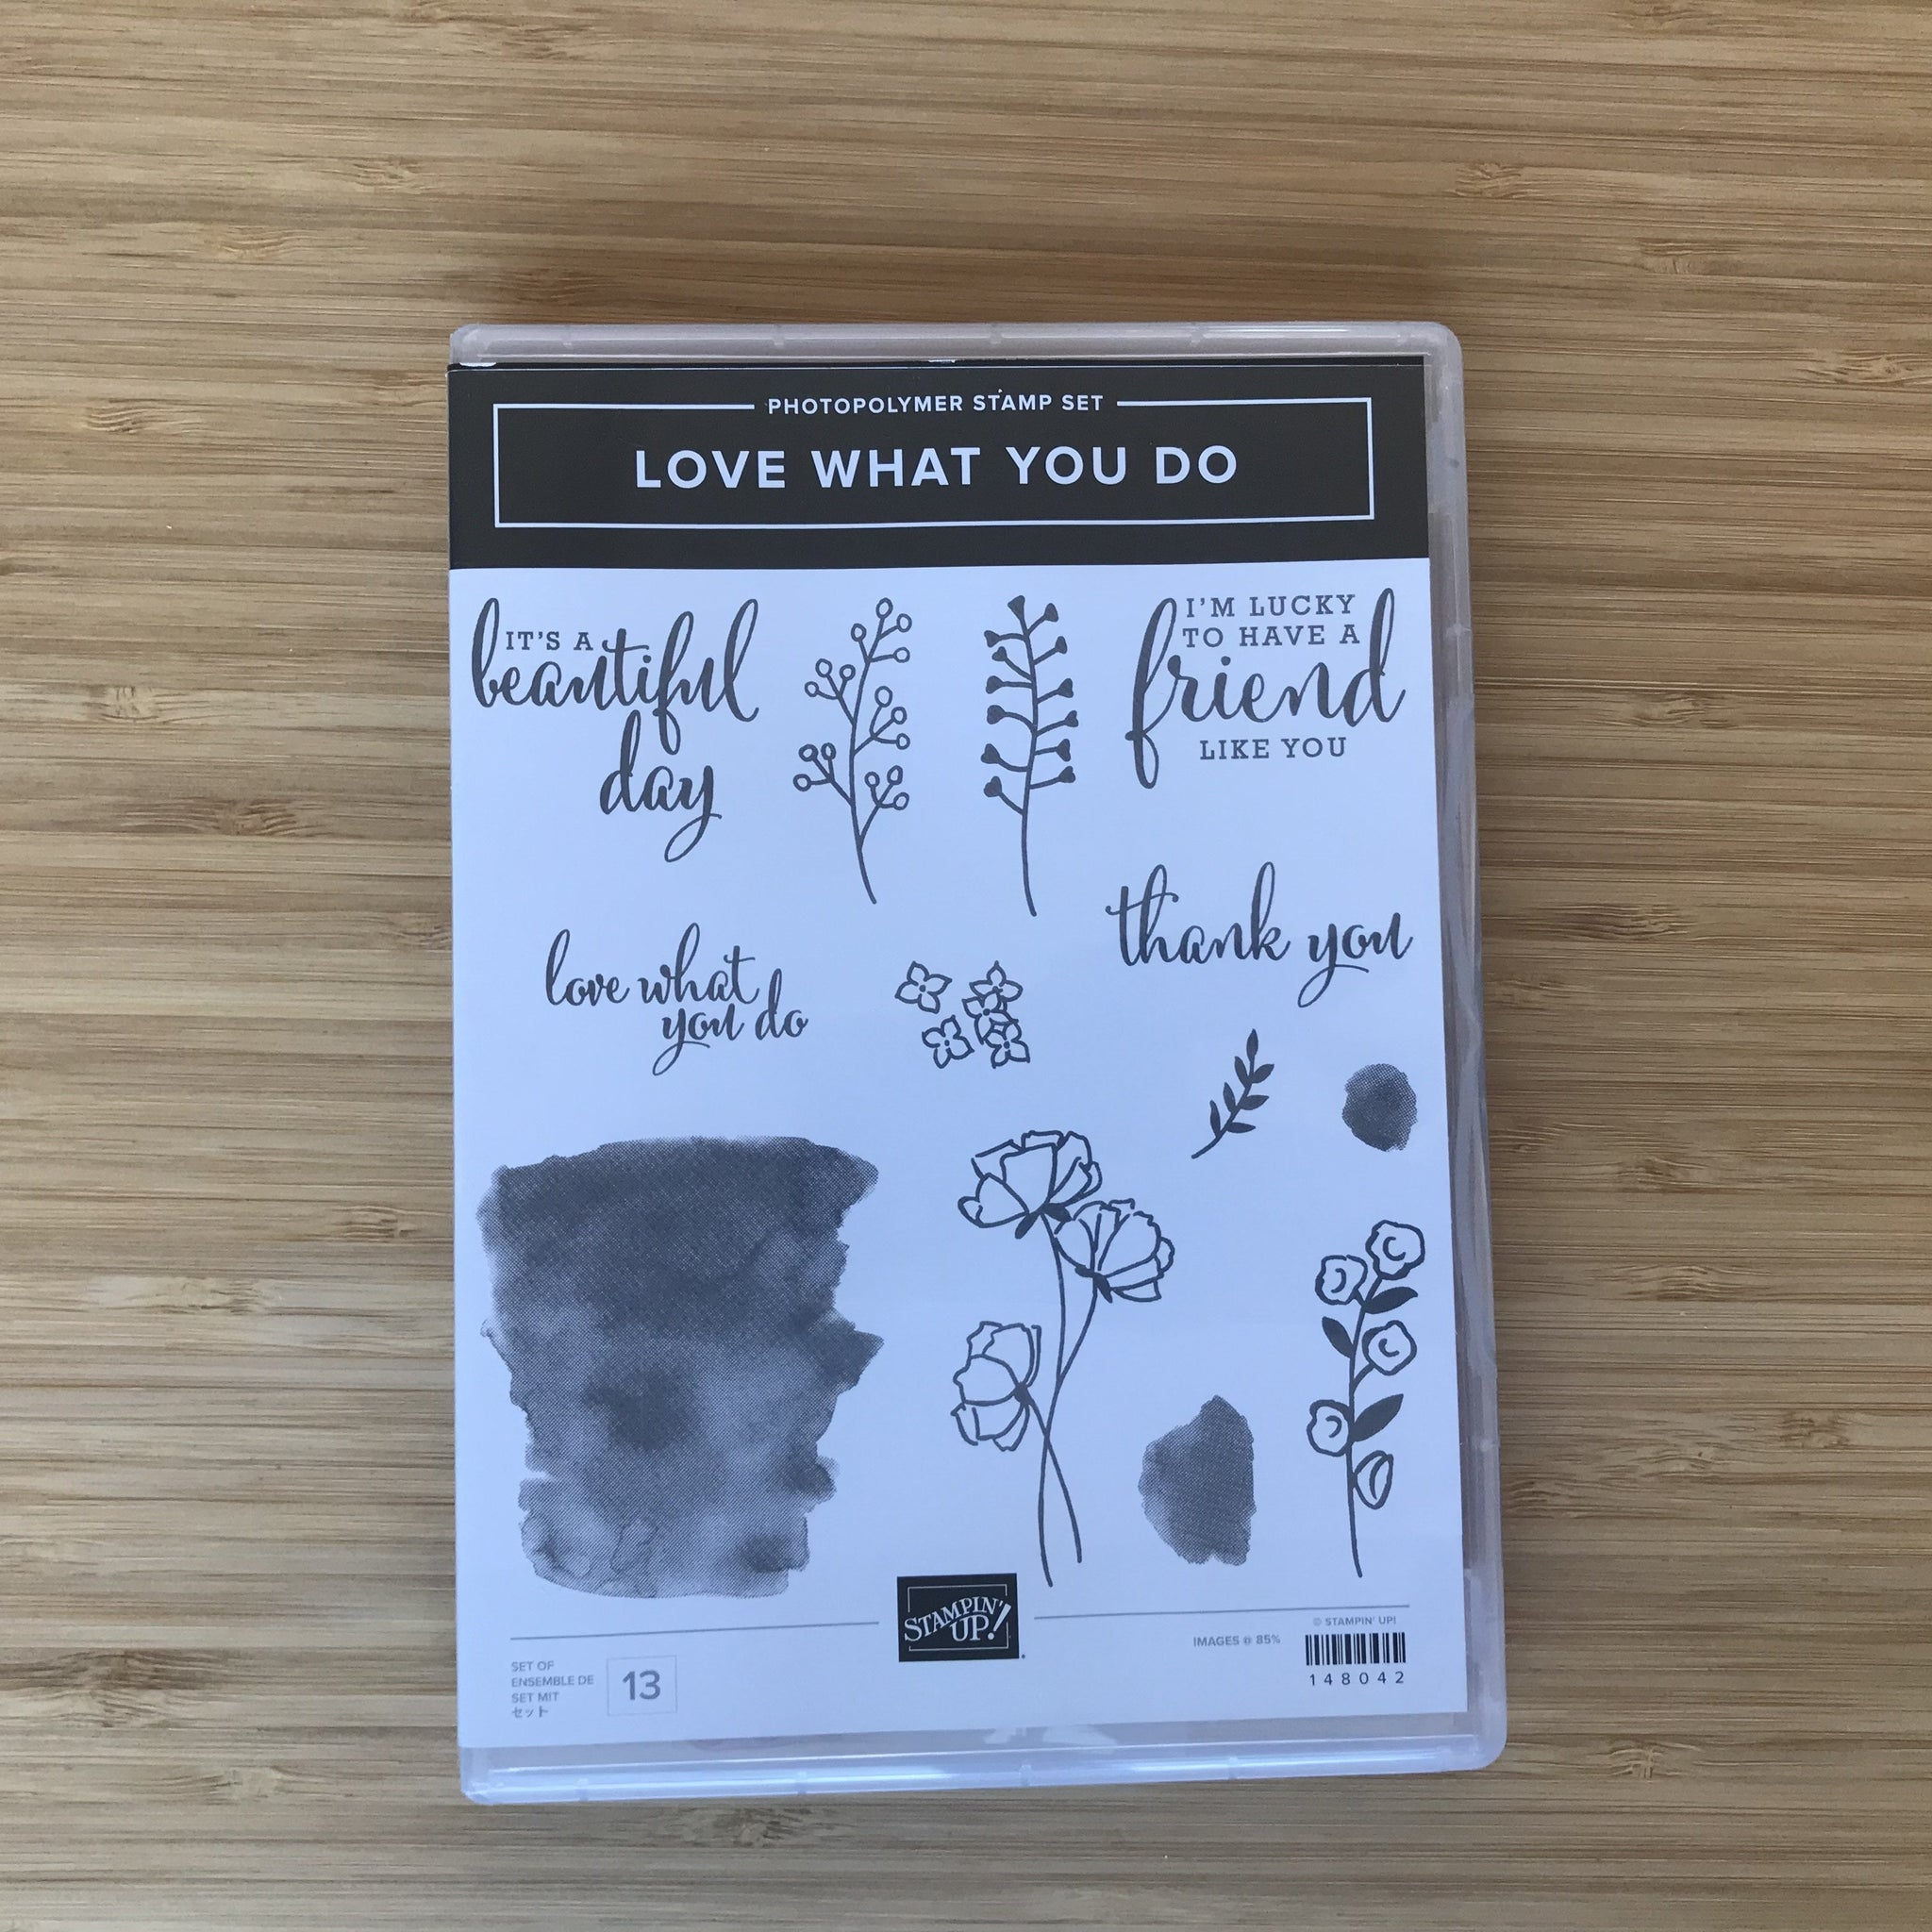 Love What You Do | Retired Photopolymer Stamp Set | Stampin' Up!®